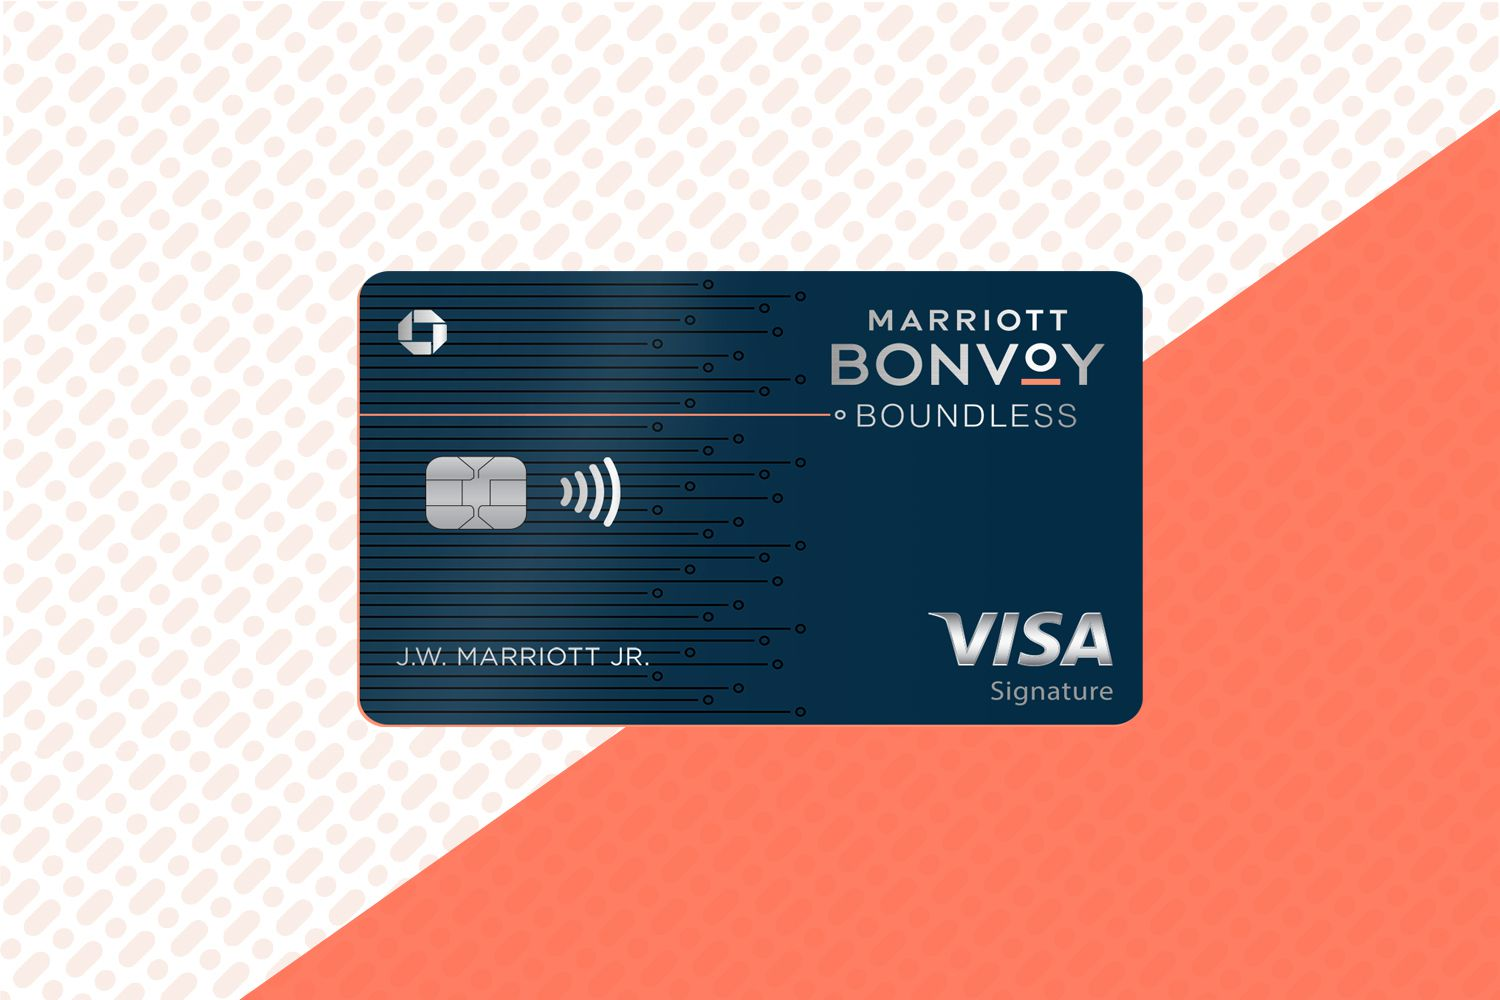 Marriott Bonvoy Boundless Review: Good for Hotel Use Only